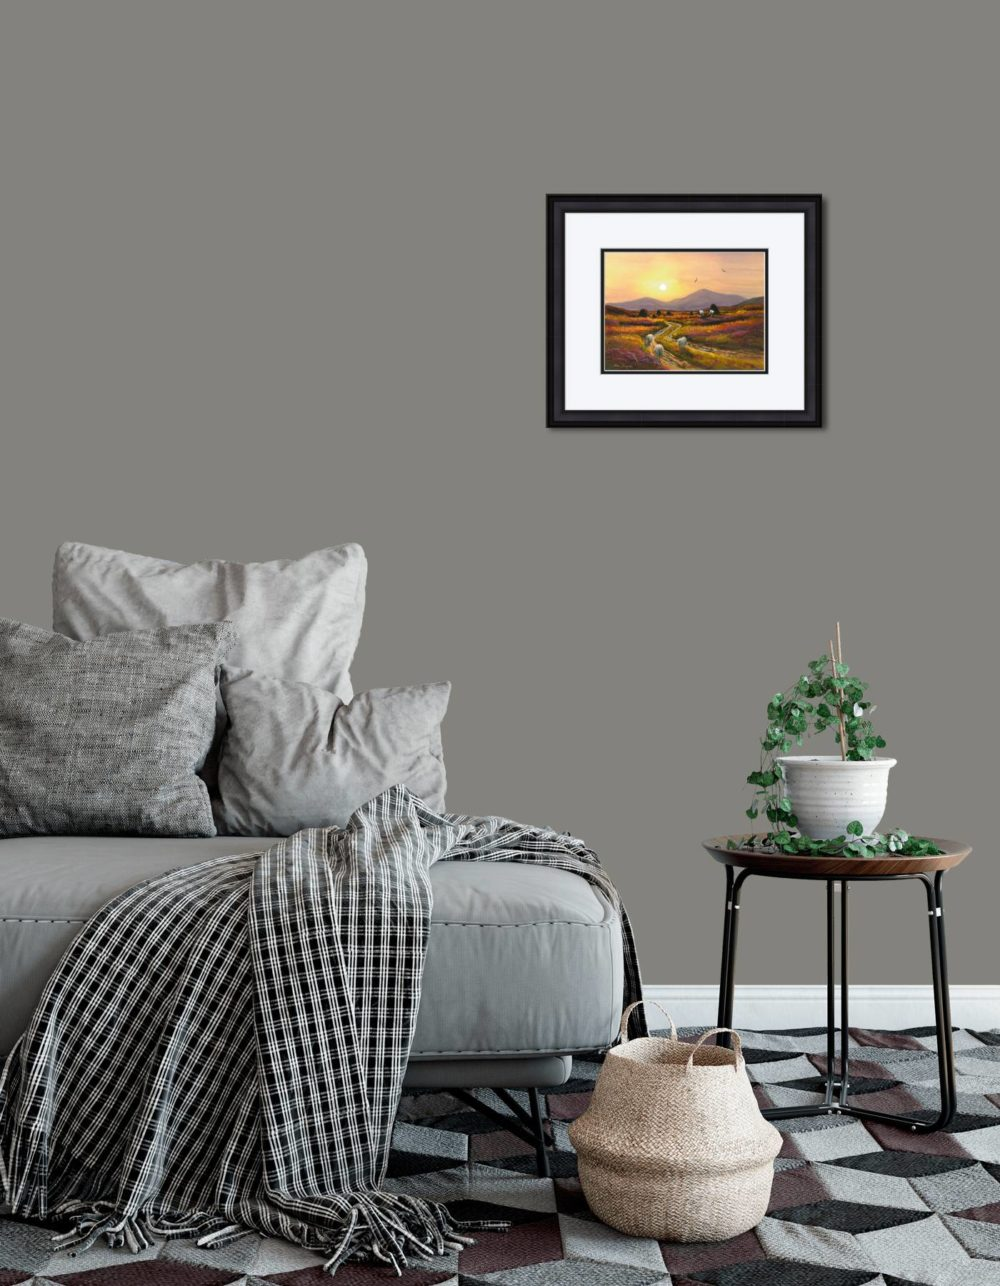 Gathering Turf At Twilight Print (Small) in Black Frame in Room